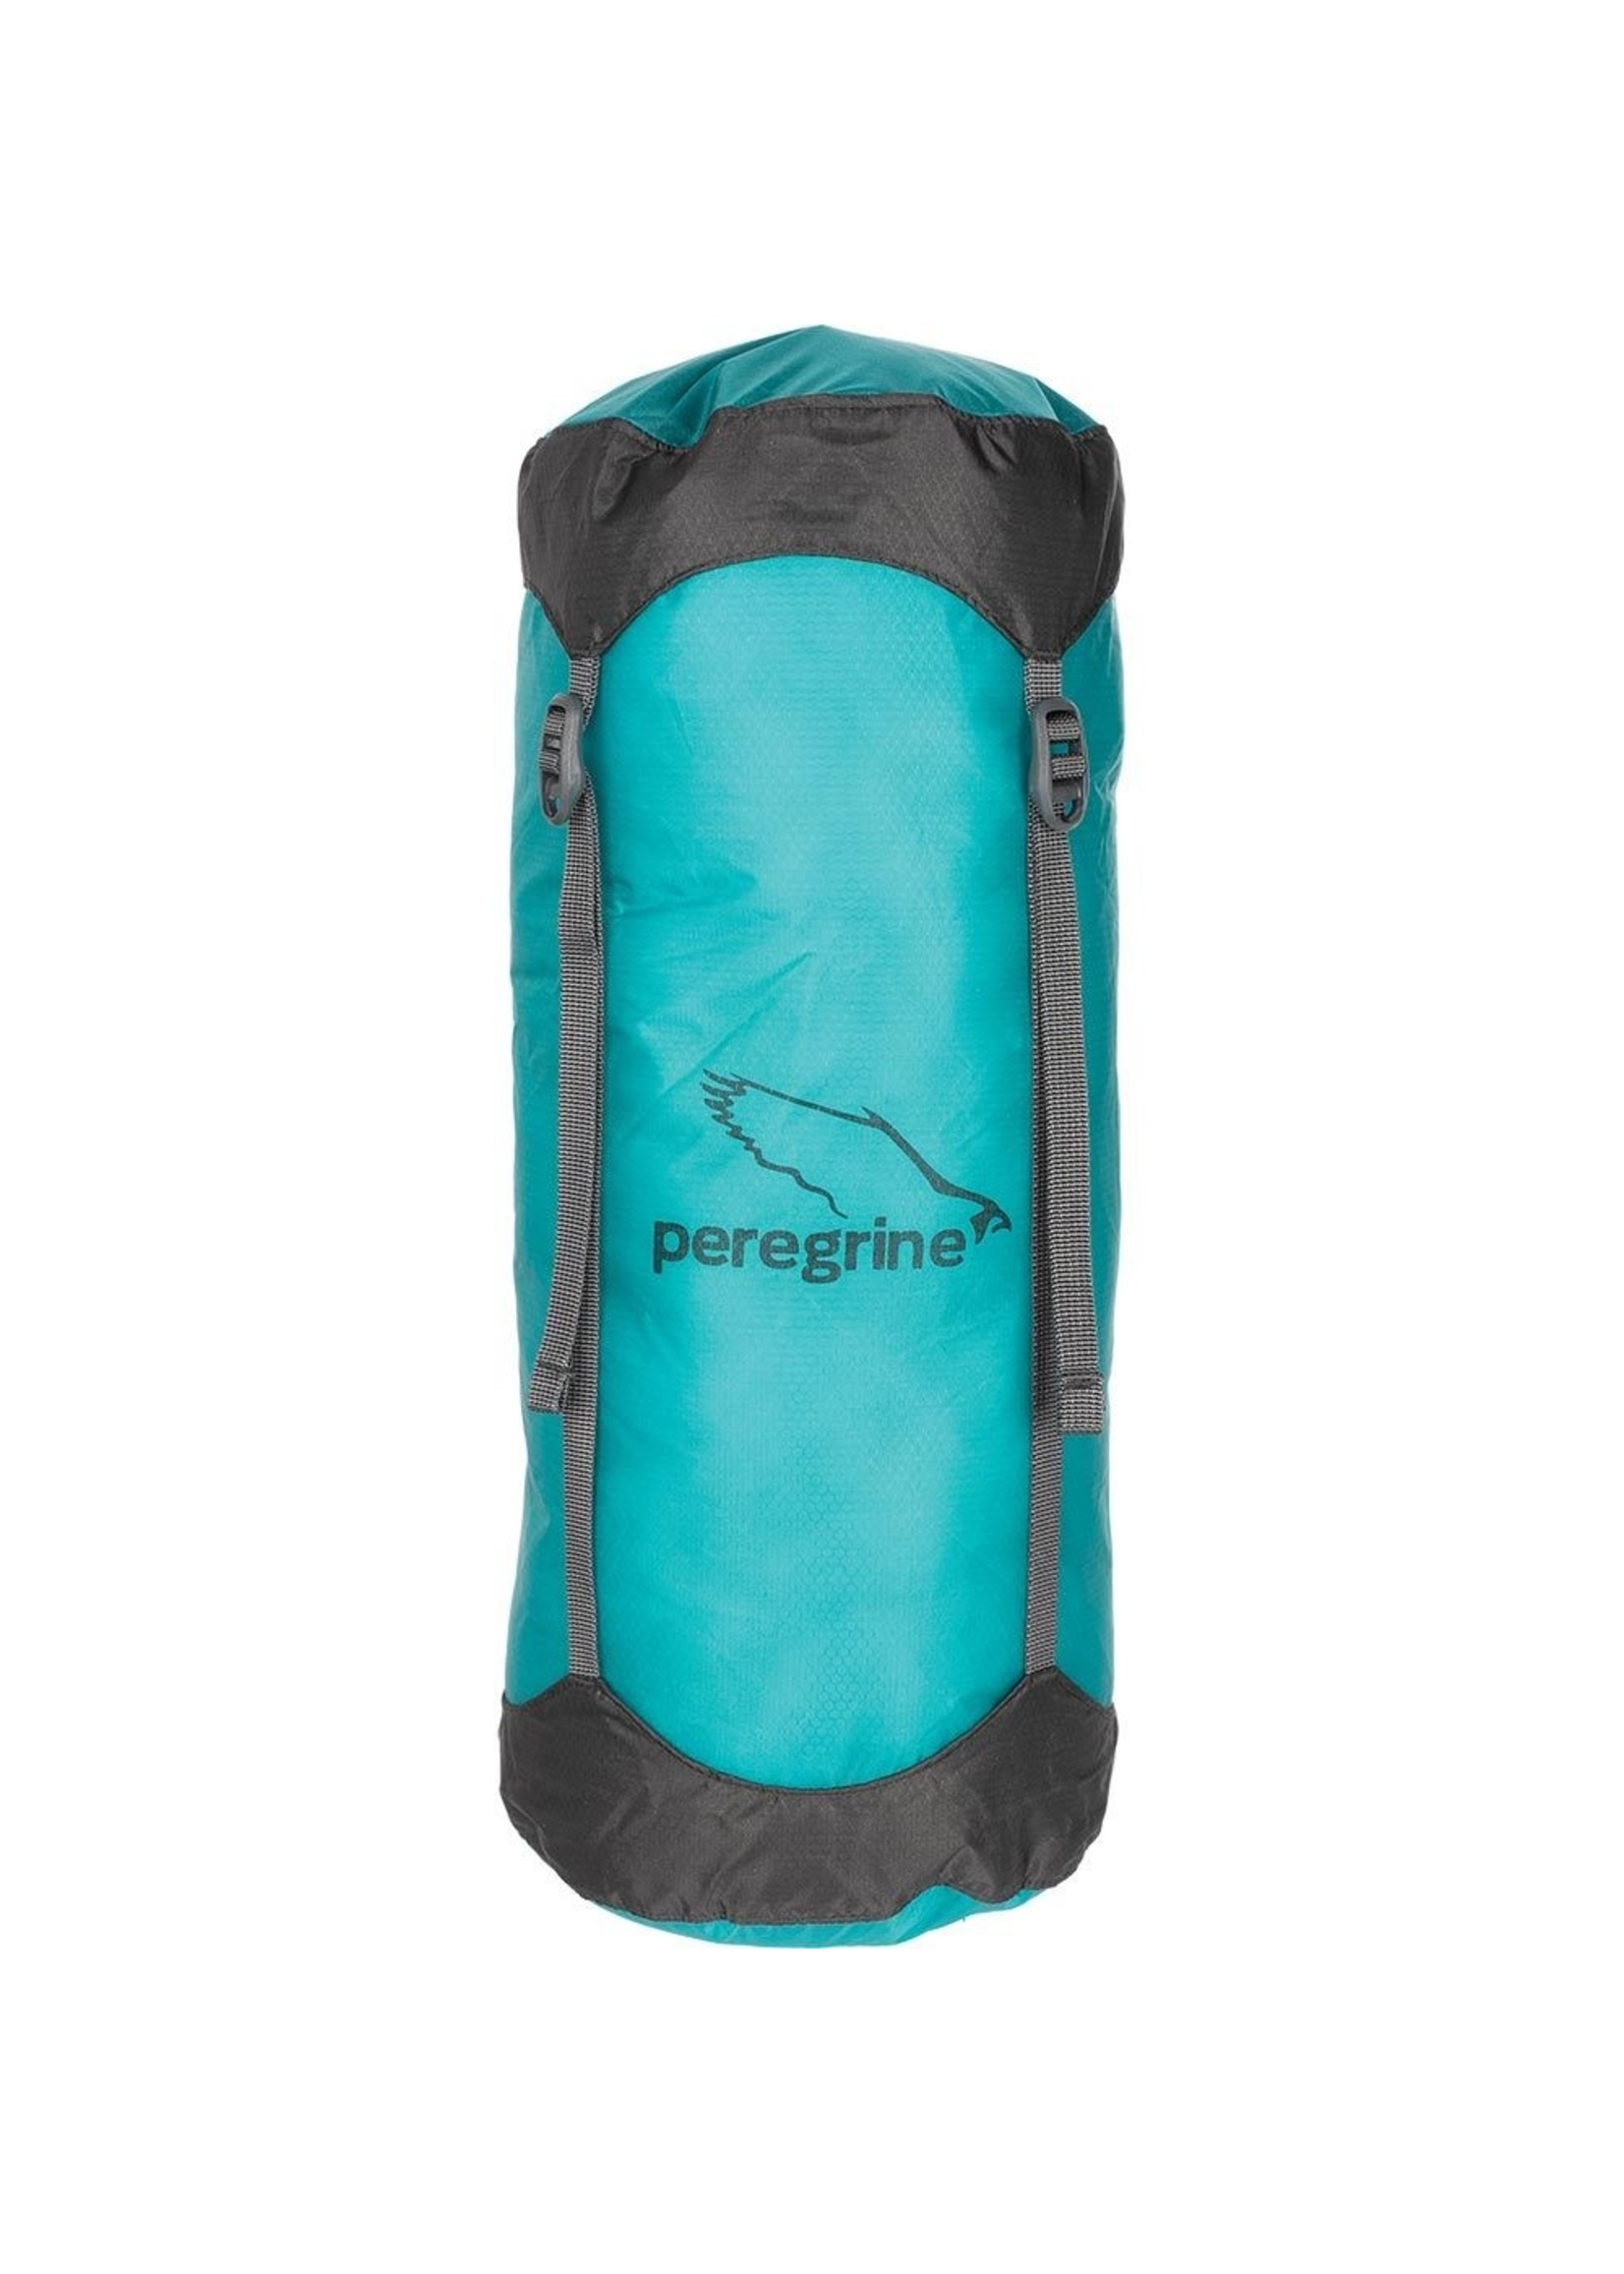 PEREGRINE Peregrine Ultra Light Compression sack